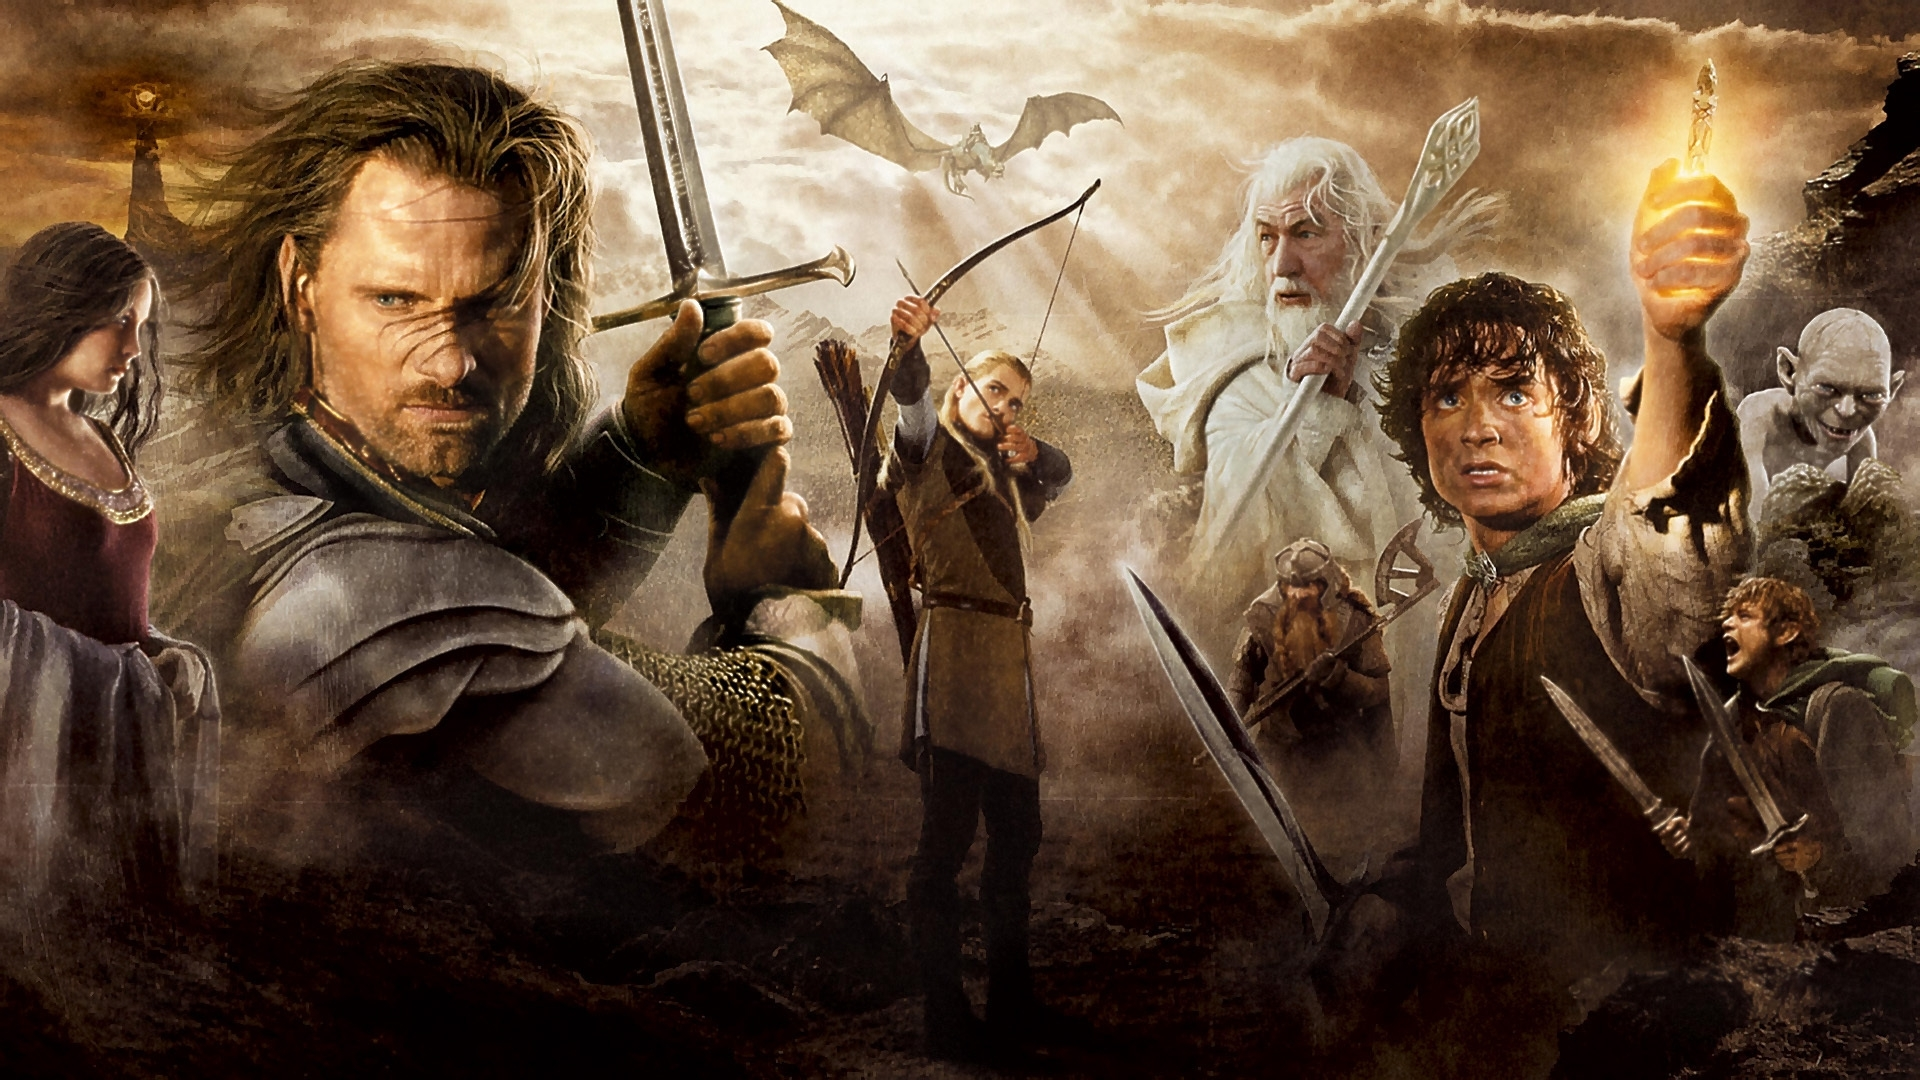 26065 download wallpaper Cinema, People, Actors, Men, Lord Of The Rings screensavers and pictures for free